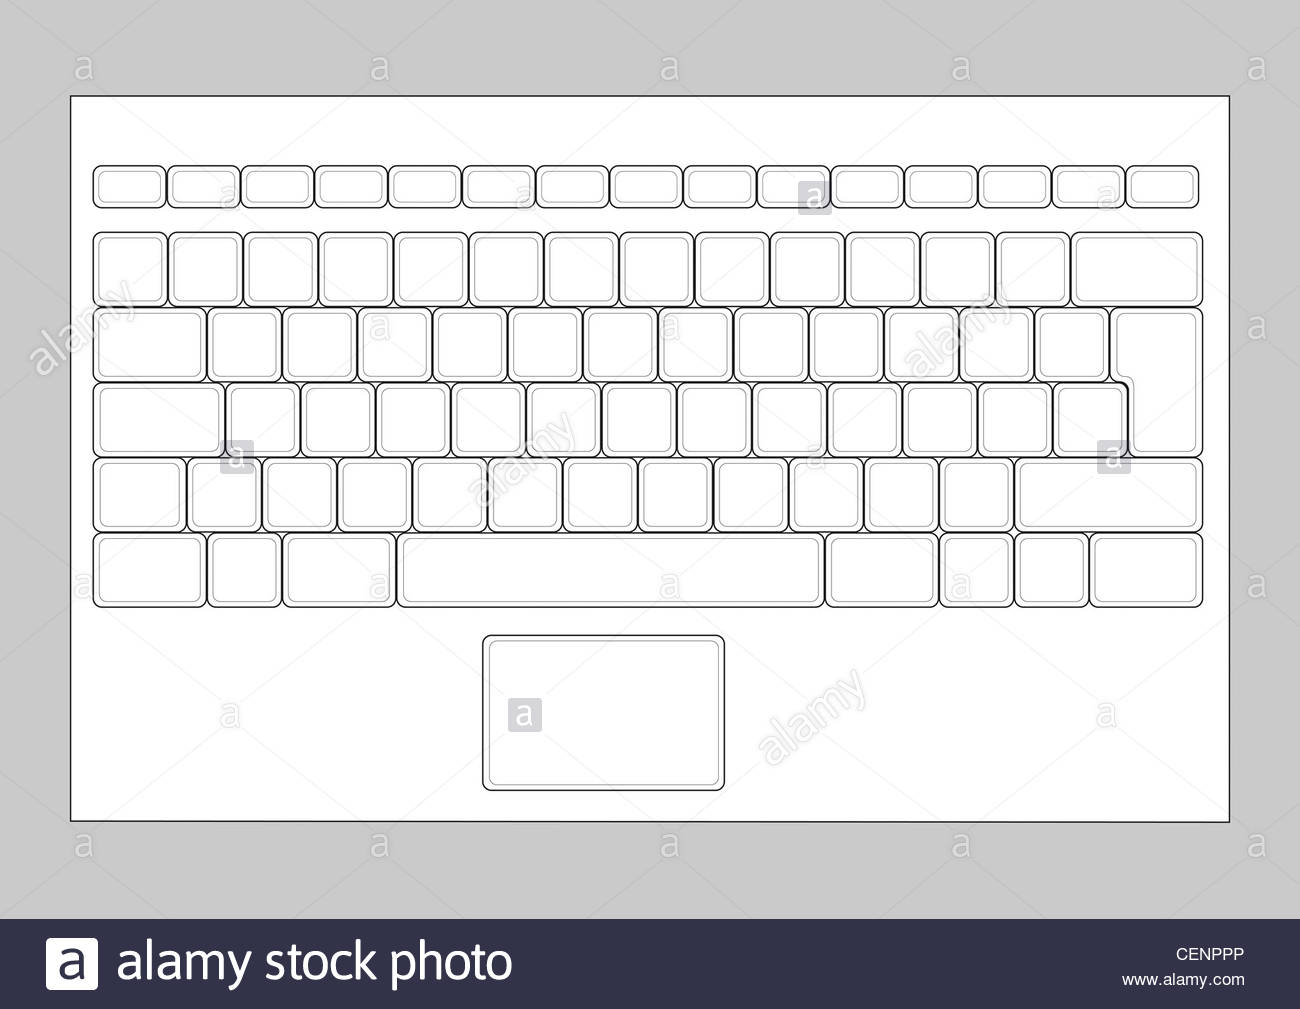 Laptop Blank Keyboard Layout Computer Input Element Stock